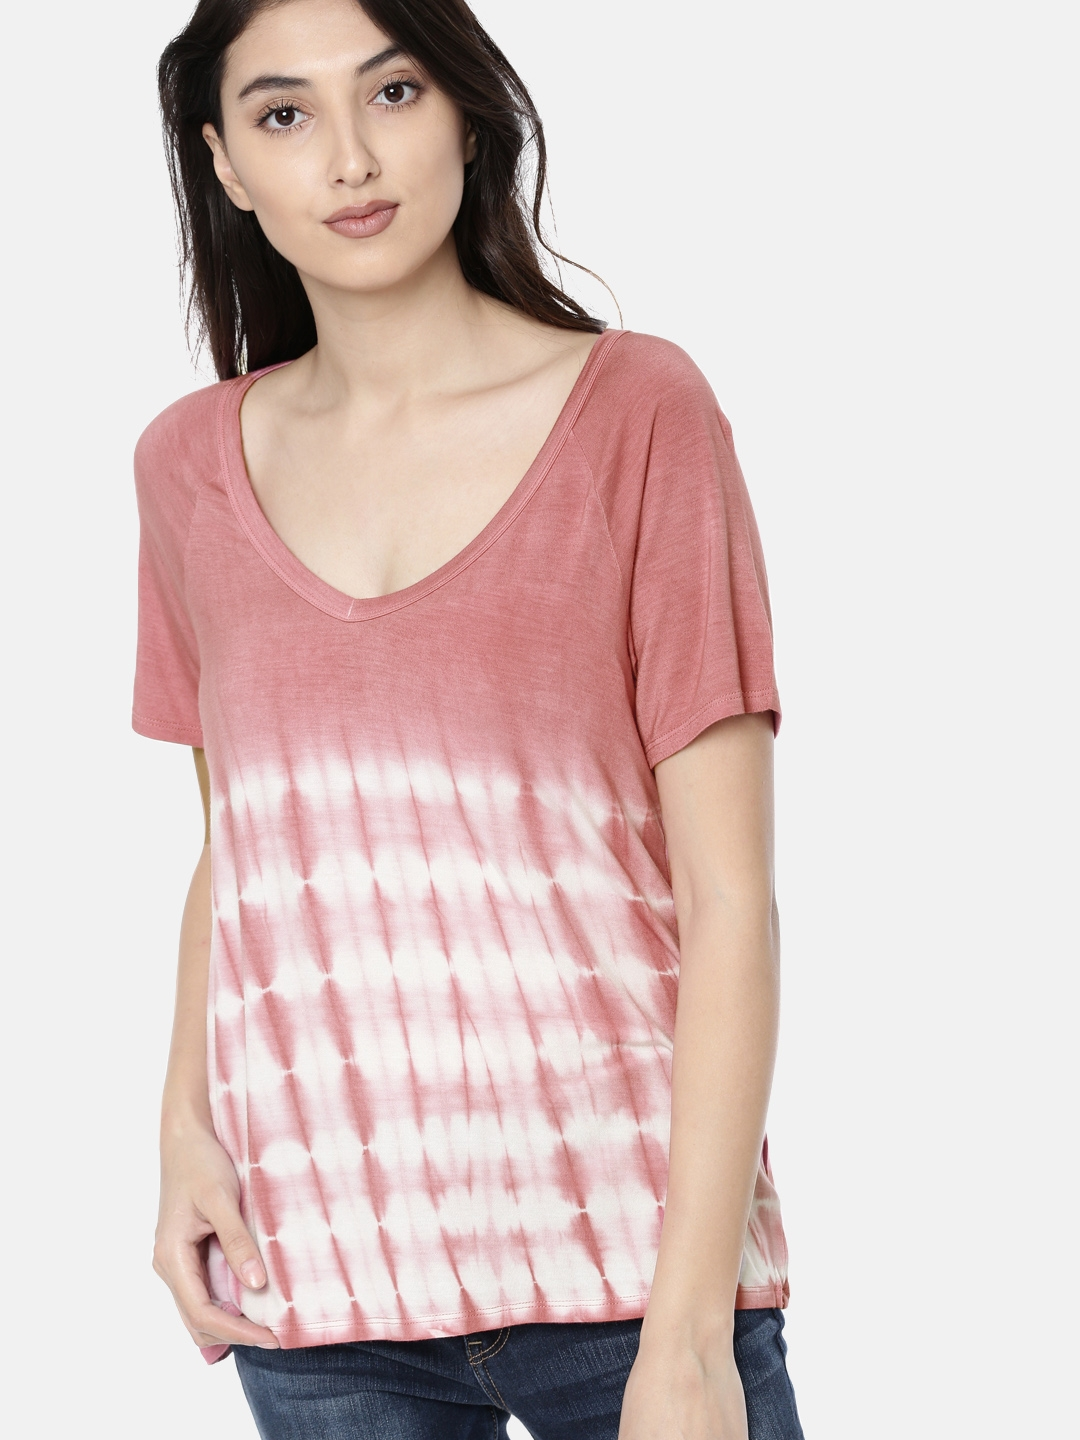 6327a586 AMERICAN EAGLE OUTFITTERS Women Pink Dyed V-Neck T-shirt